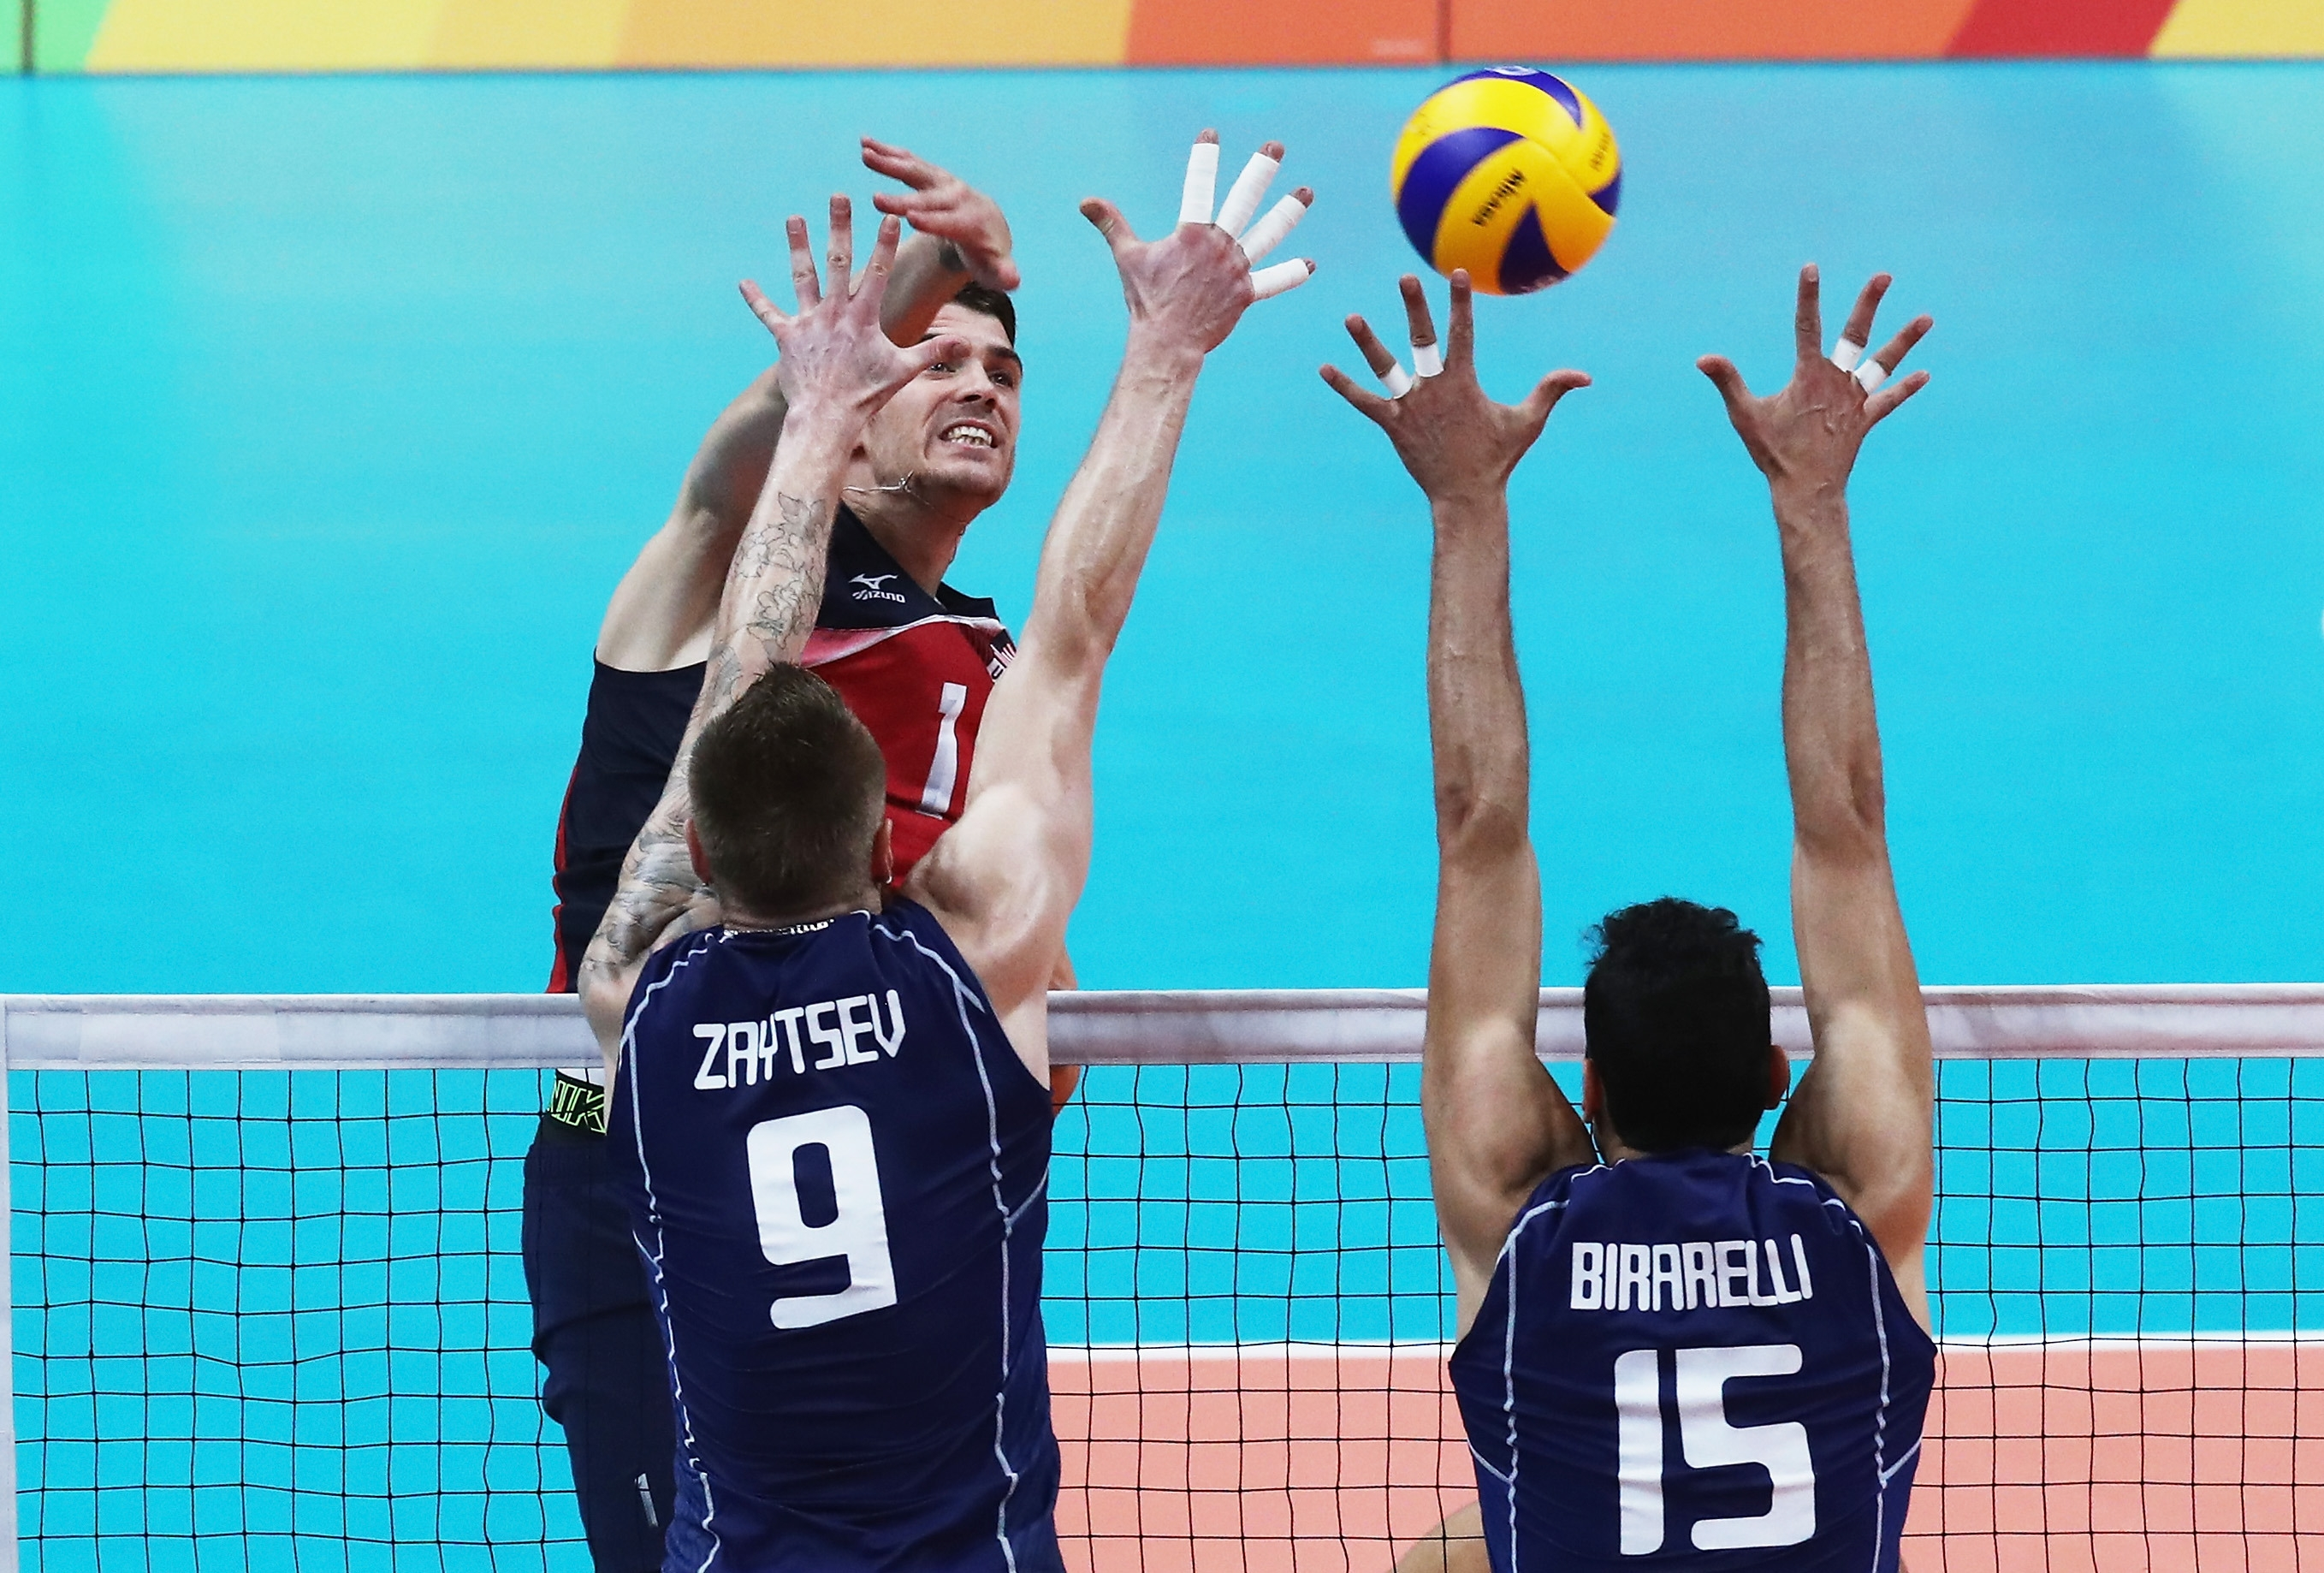 Matthew Anderson and his American team came up a little short in a five-set match against Italy on Friday.